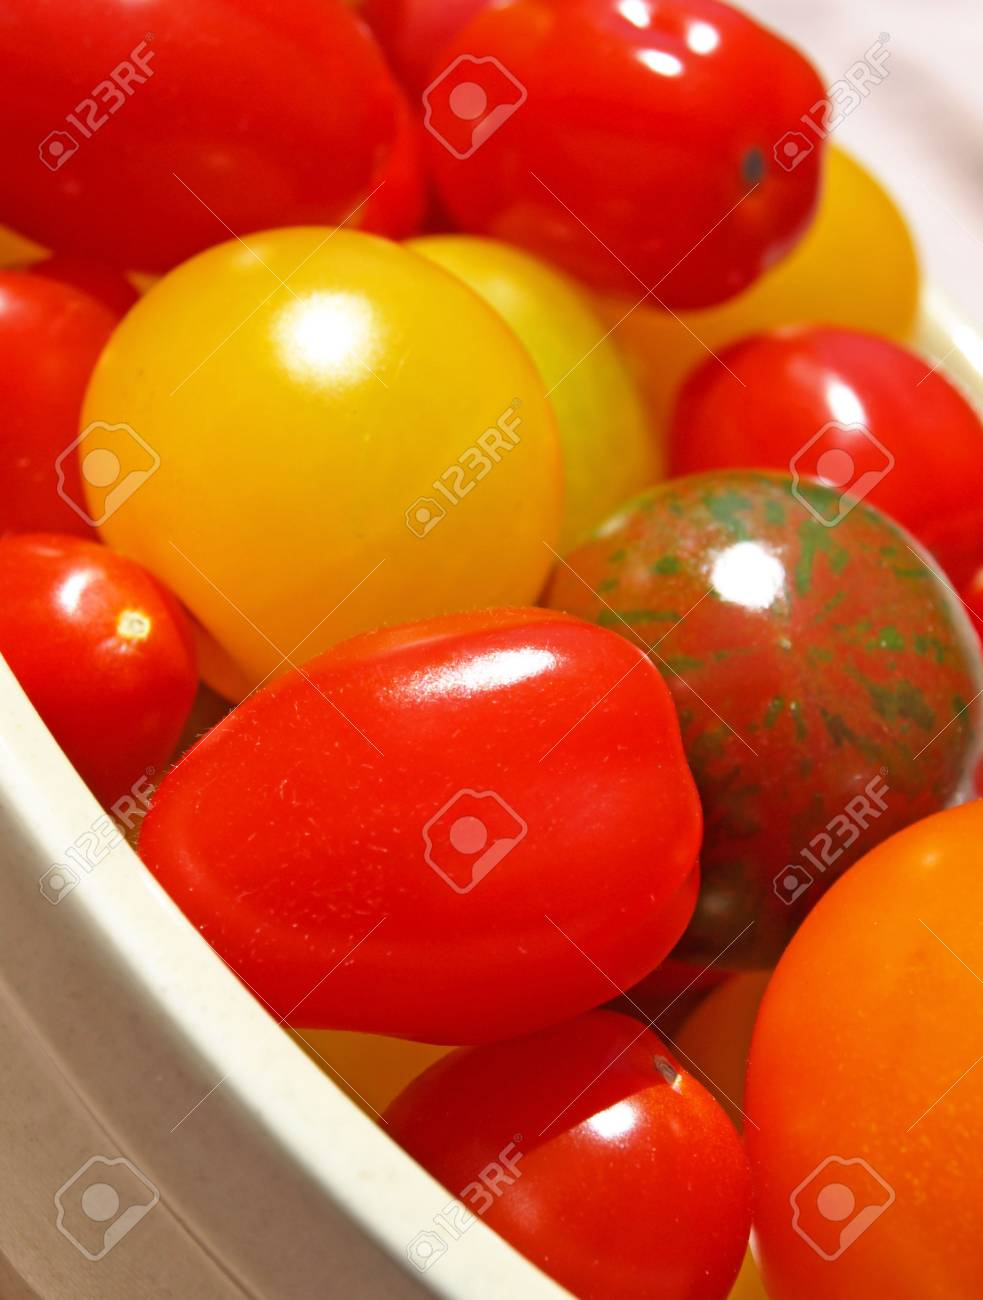 Tomatoes in dish Stock Photo - 5205822